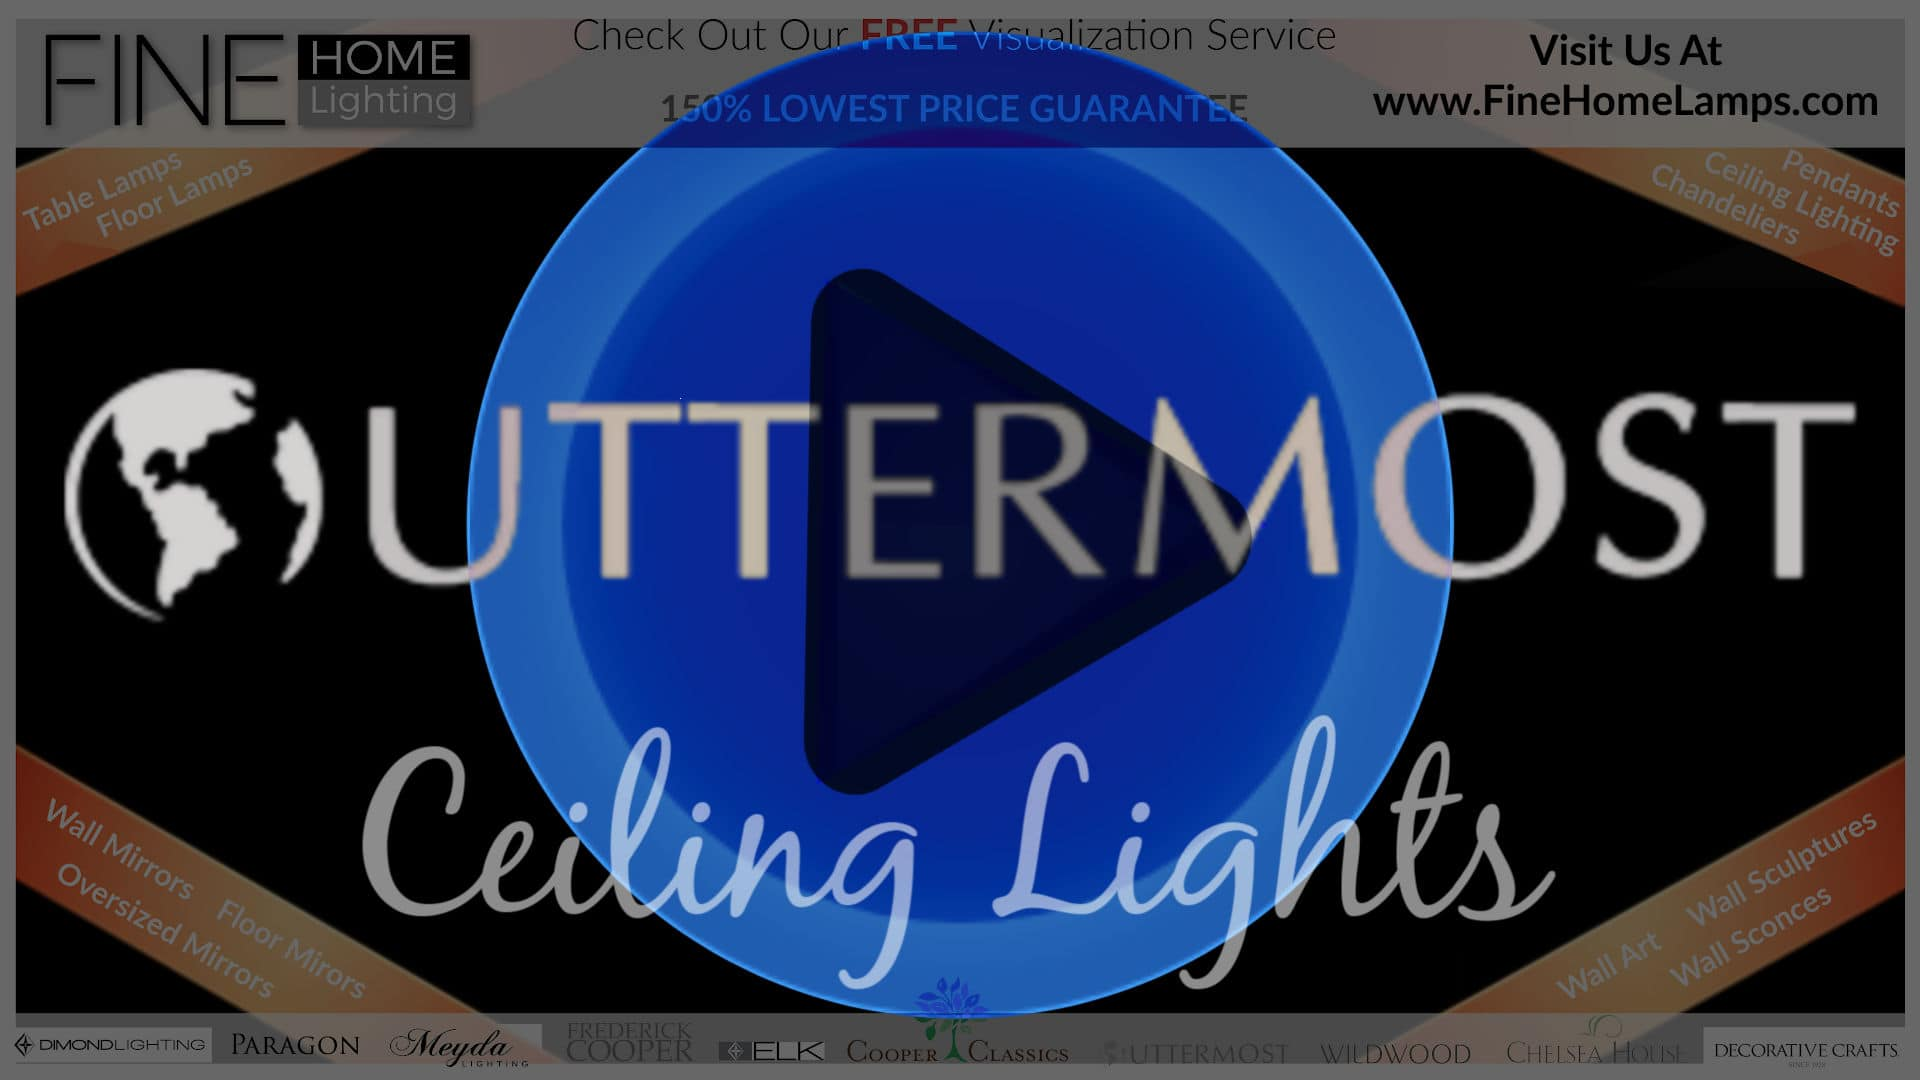 Uttermost-Ceiling-Lights-Thanks-for-watching-this-video-Get-an-additional-15-percent-off-your-next-purchase-Use-Coupon-Code-VIDEO